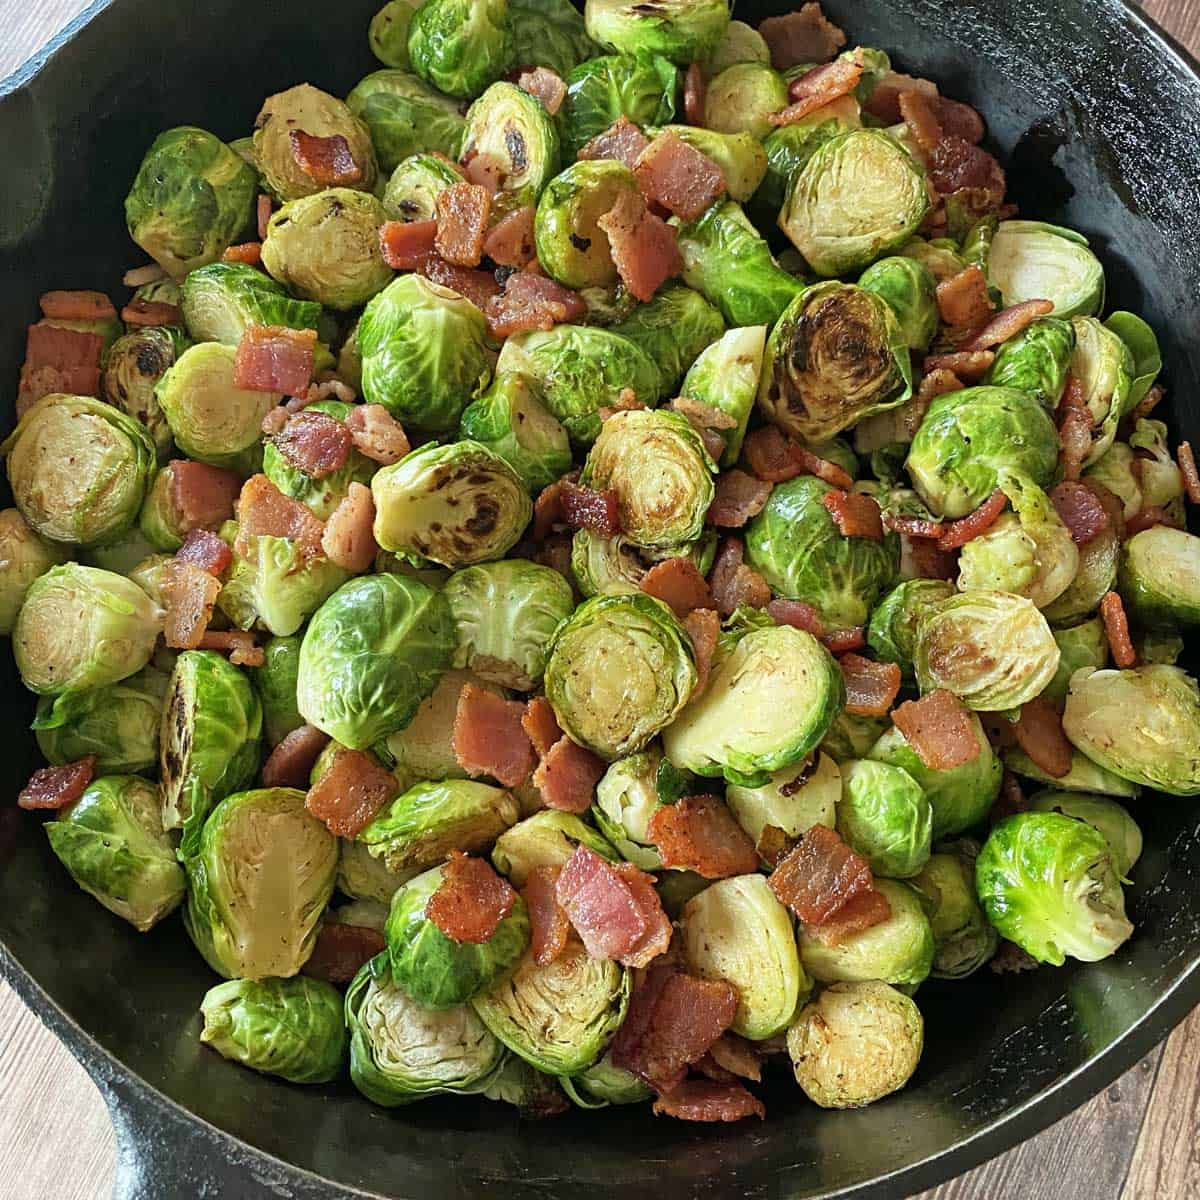 Cast iron skillet with finished Brussel sprouts with bacon, garlic and Balsamic, ready to serve.